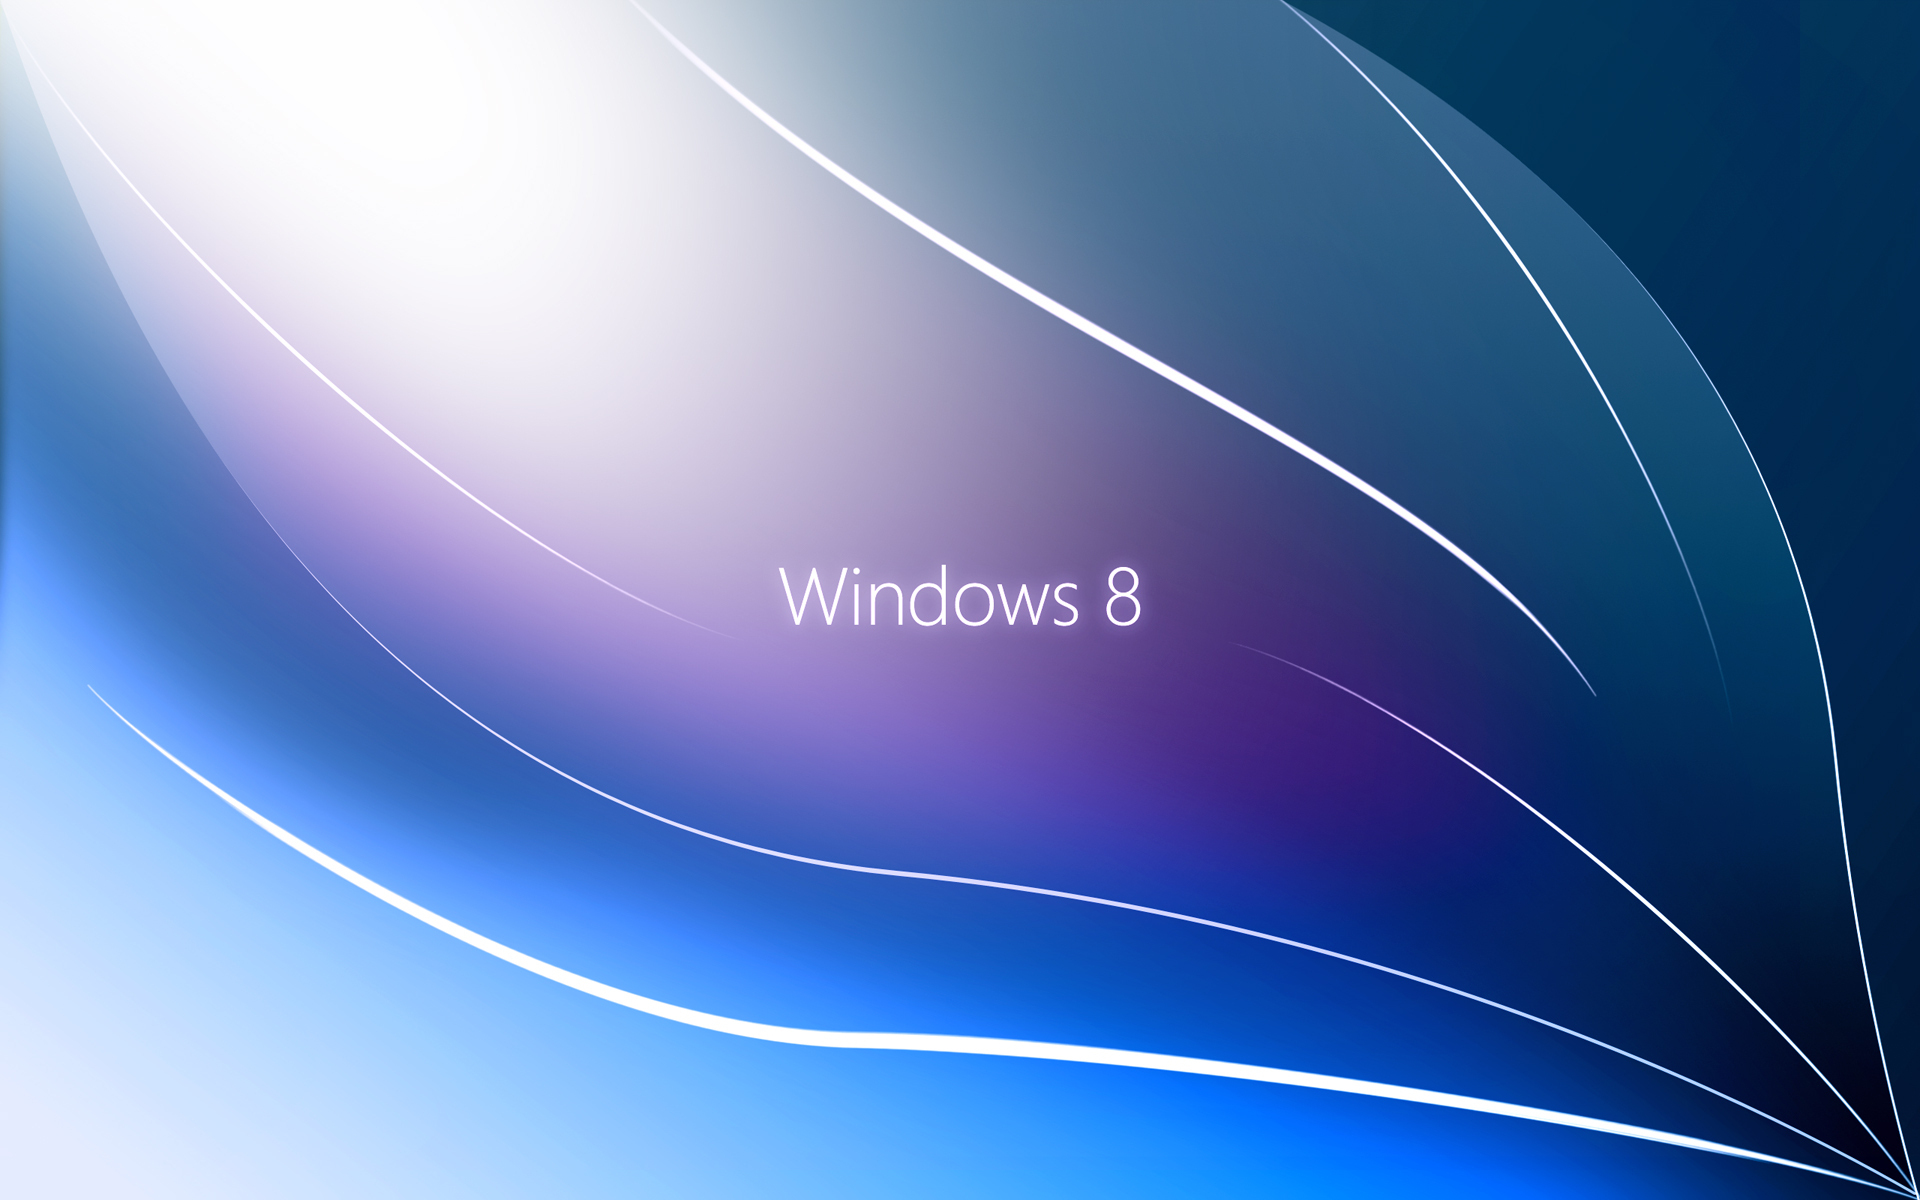 1920x1200 windows 8 abstract desktop pc and mac wallpaper